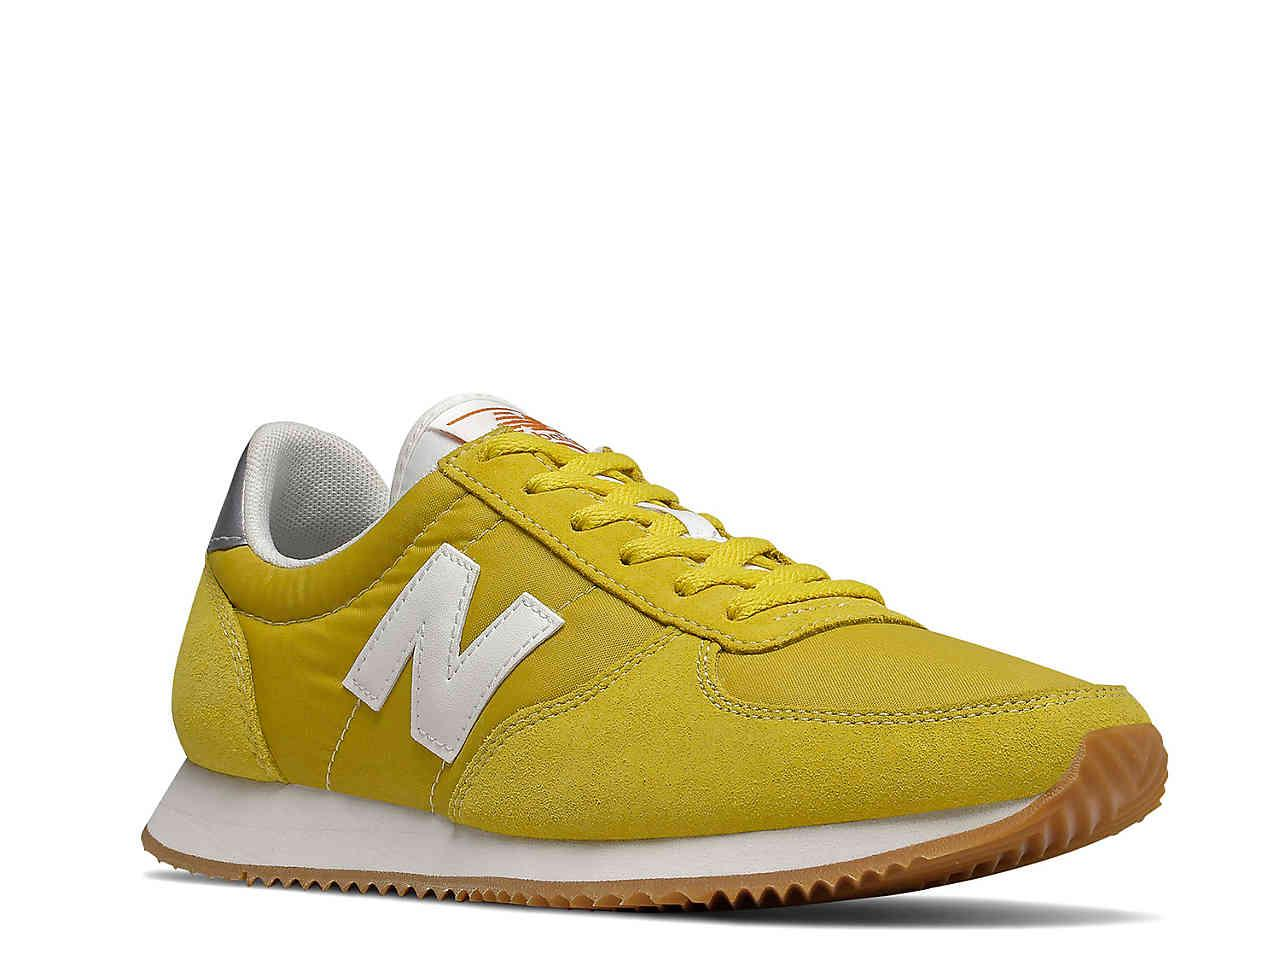 New Balance Suede 220 Sneaker In Mustard Yellow White Yellow Lyst